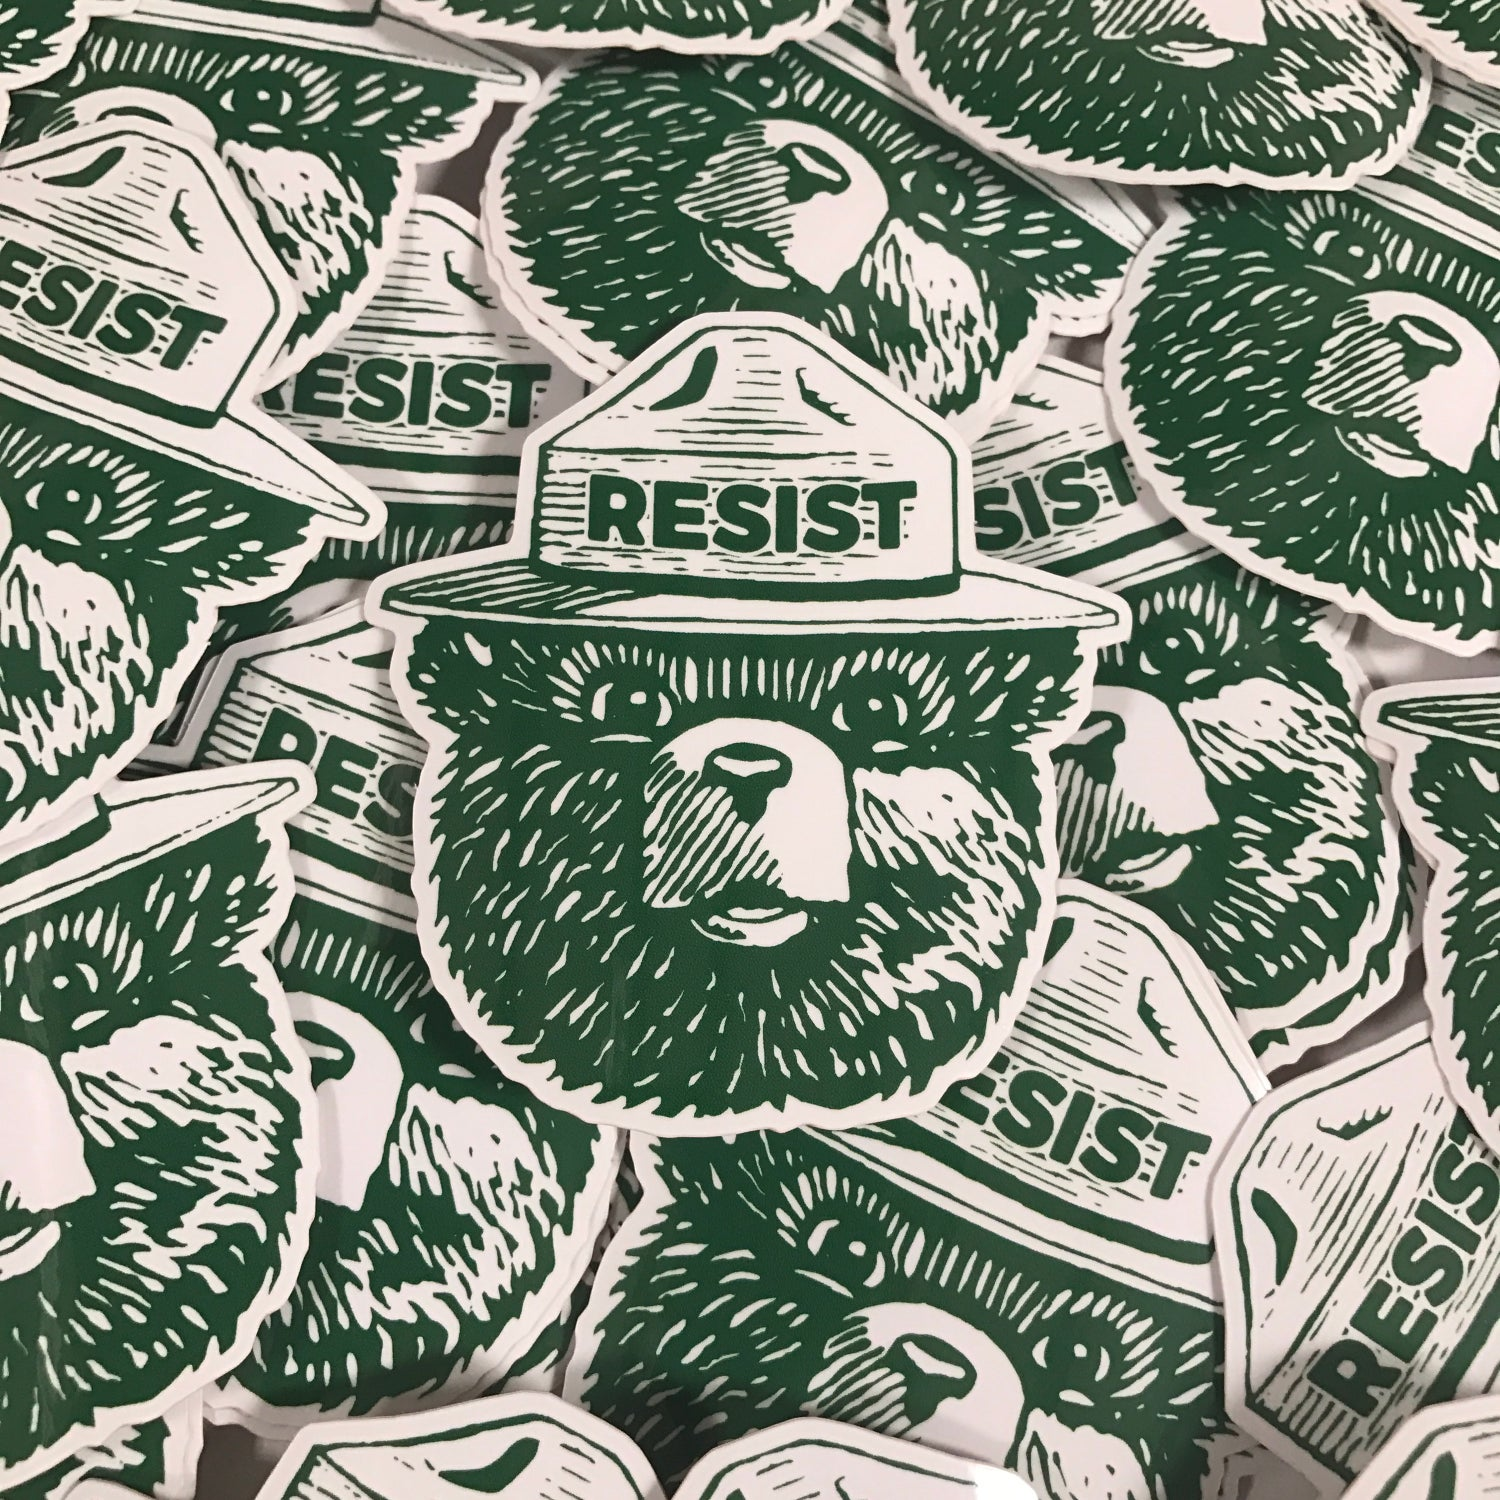 Image of Resist Trump Bear Lapel Pin & Sticker Pack